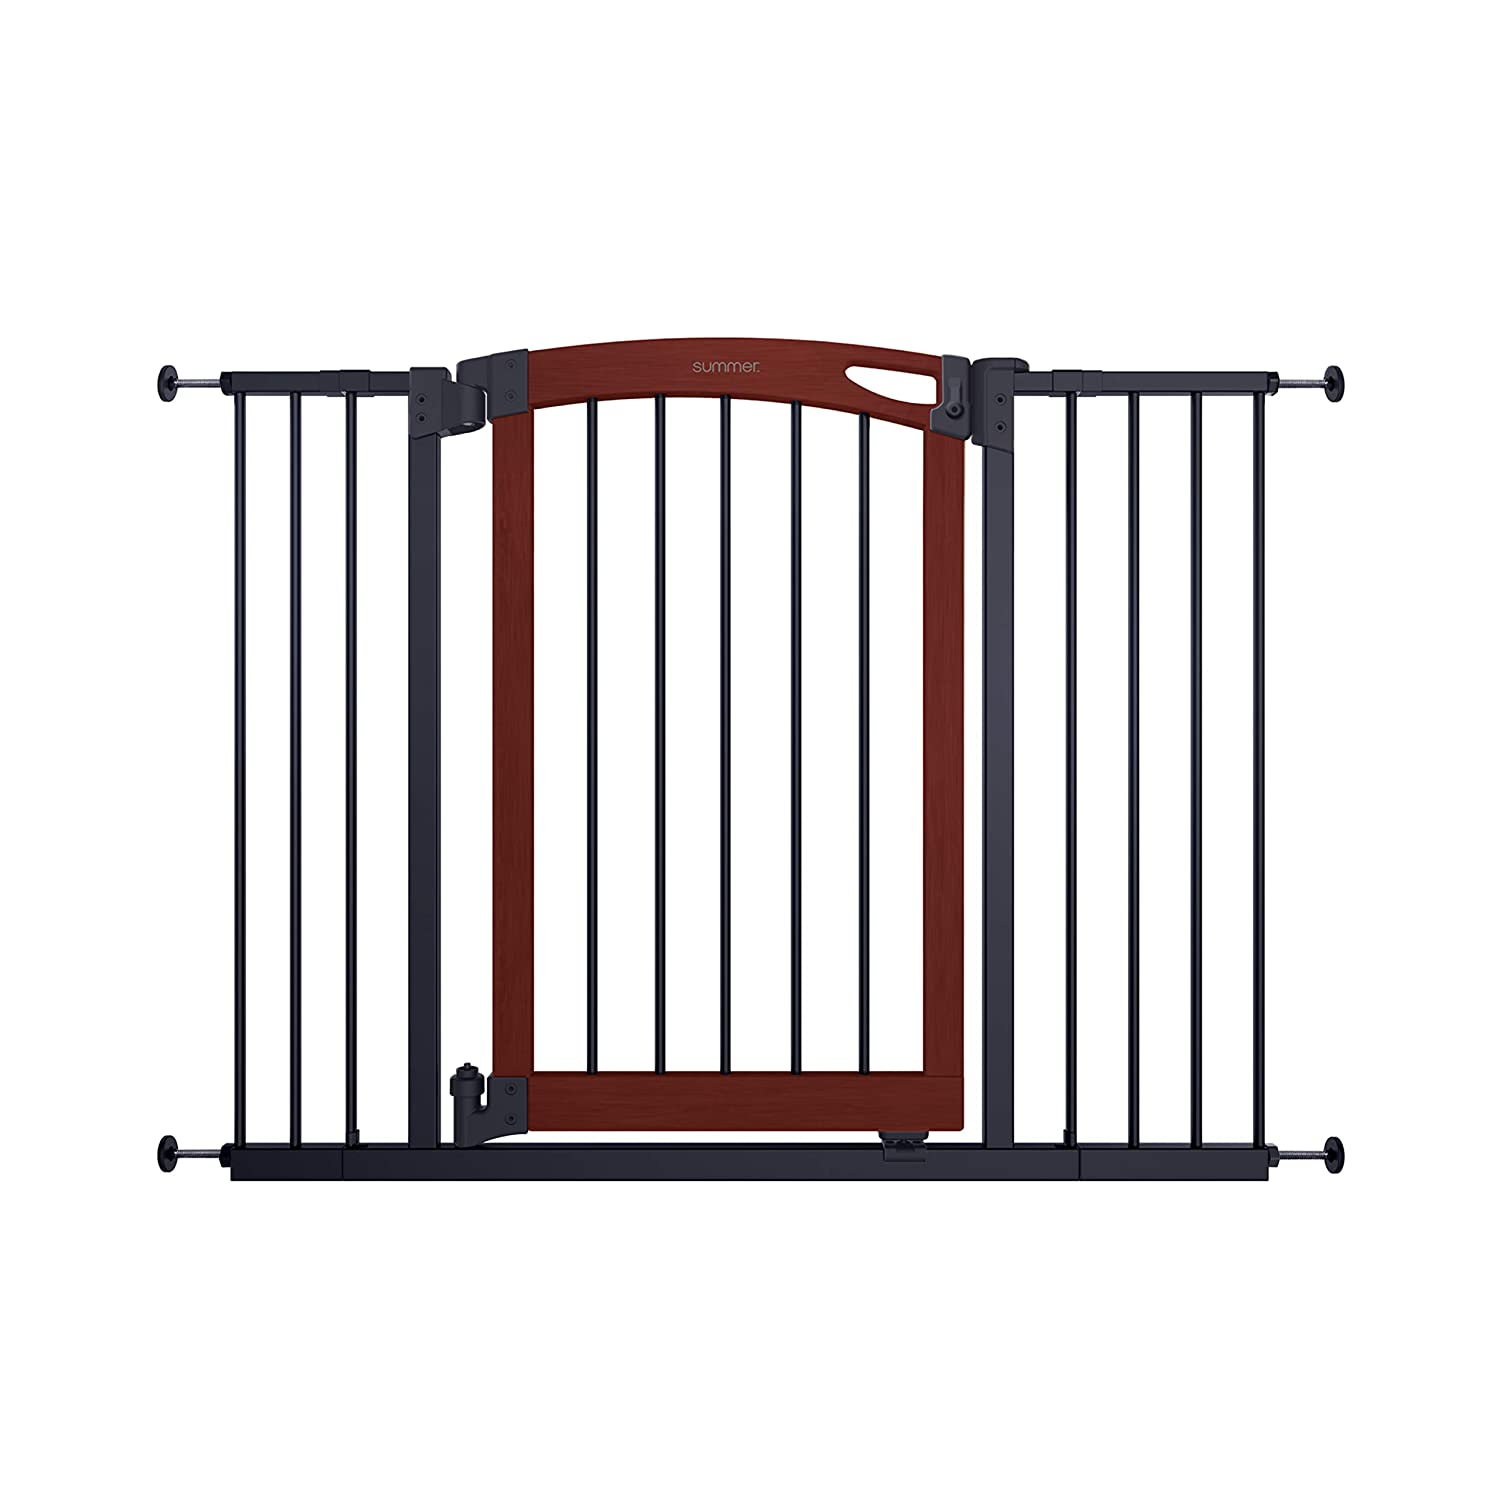 "Summer Essex Craft Safety Baby Gate, Solid Wood Cherry Stain Arched Doorway with Charcoal Gray Metal Frame – 30"" Tall, Fits Openings up to 28"" to 42"" Wide, Baby and Pet Gate for Doorways and Stairways"